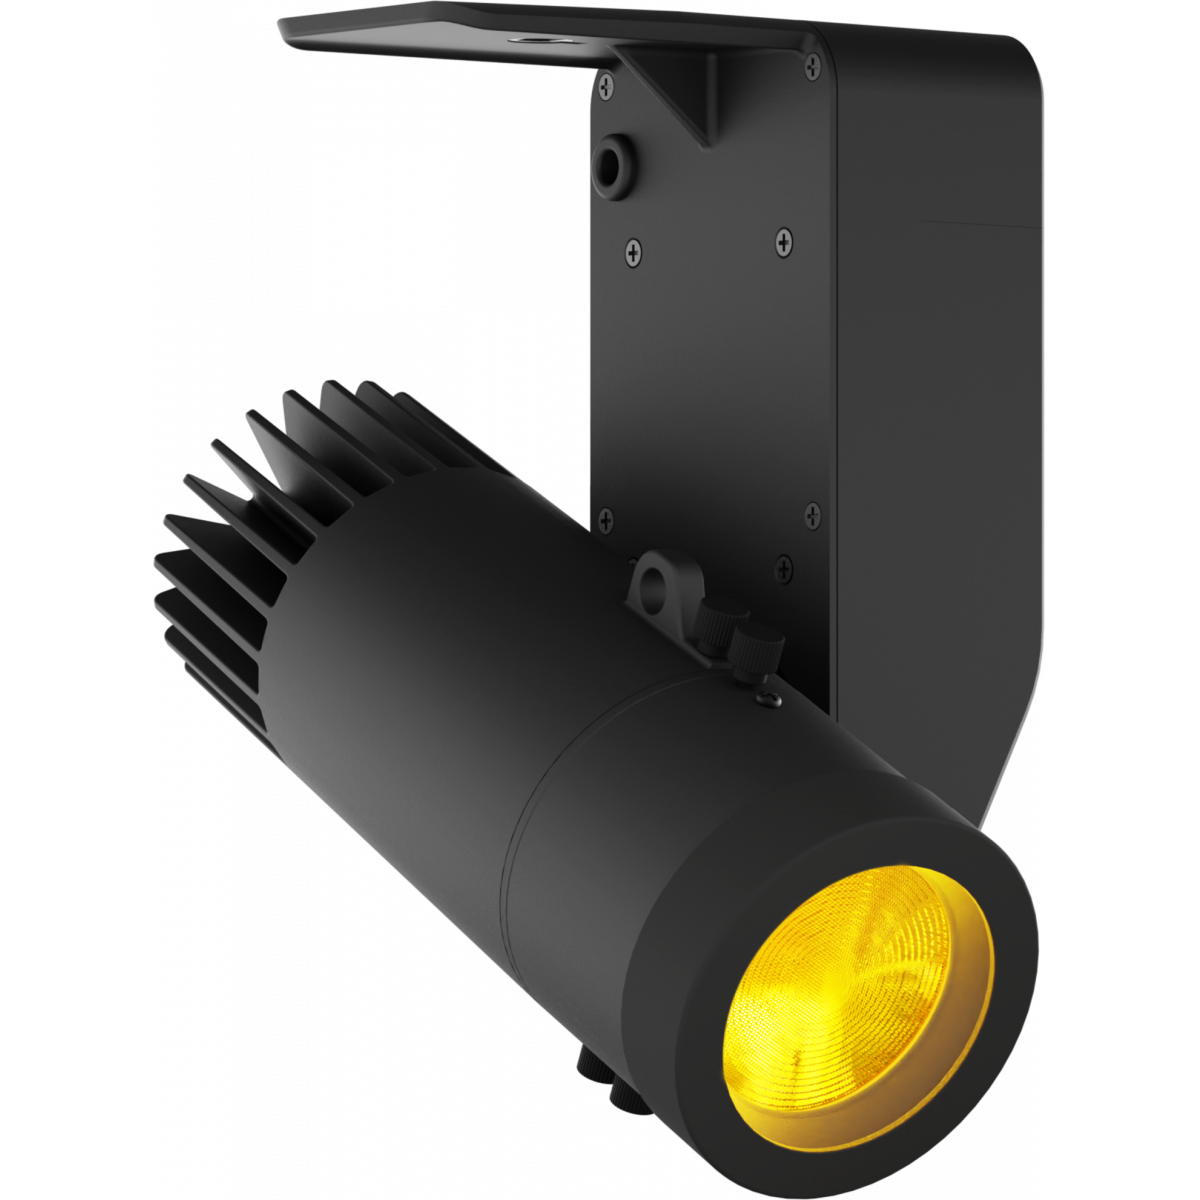 The PROLIGHTS EclDisplay is a range of revolutionary and flexible LED spotlights designed for galleries, retail and any public venue where an advanced but classical looking fixture is needed, with several control options, sources and optic versions available to precisely meet any application.